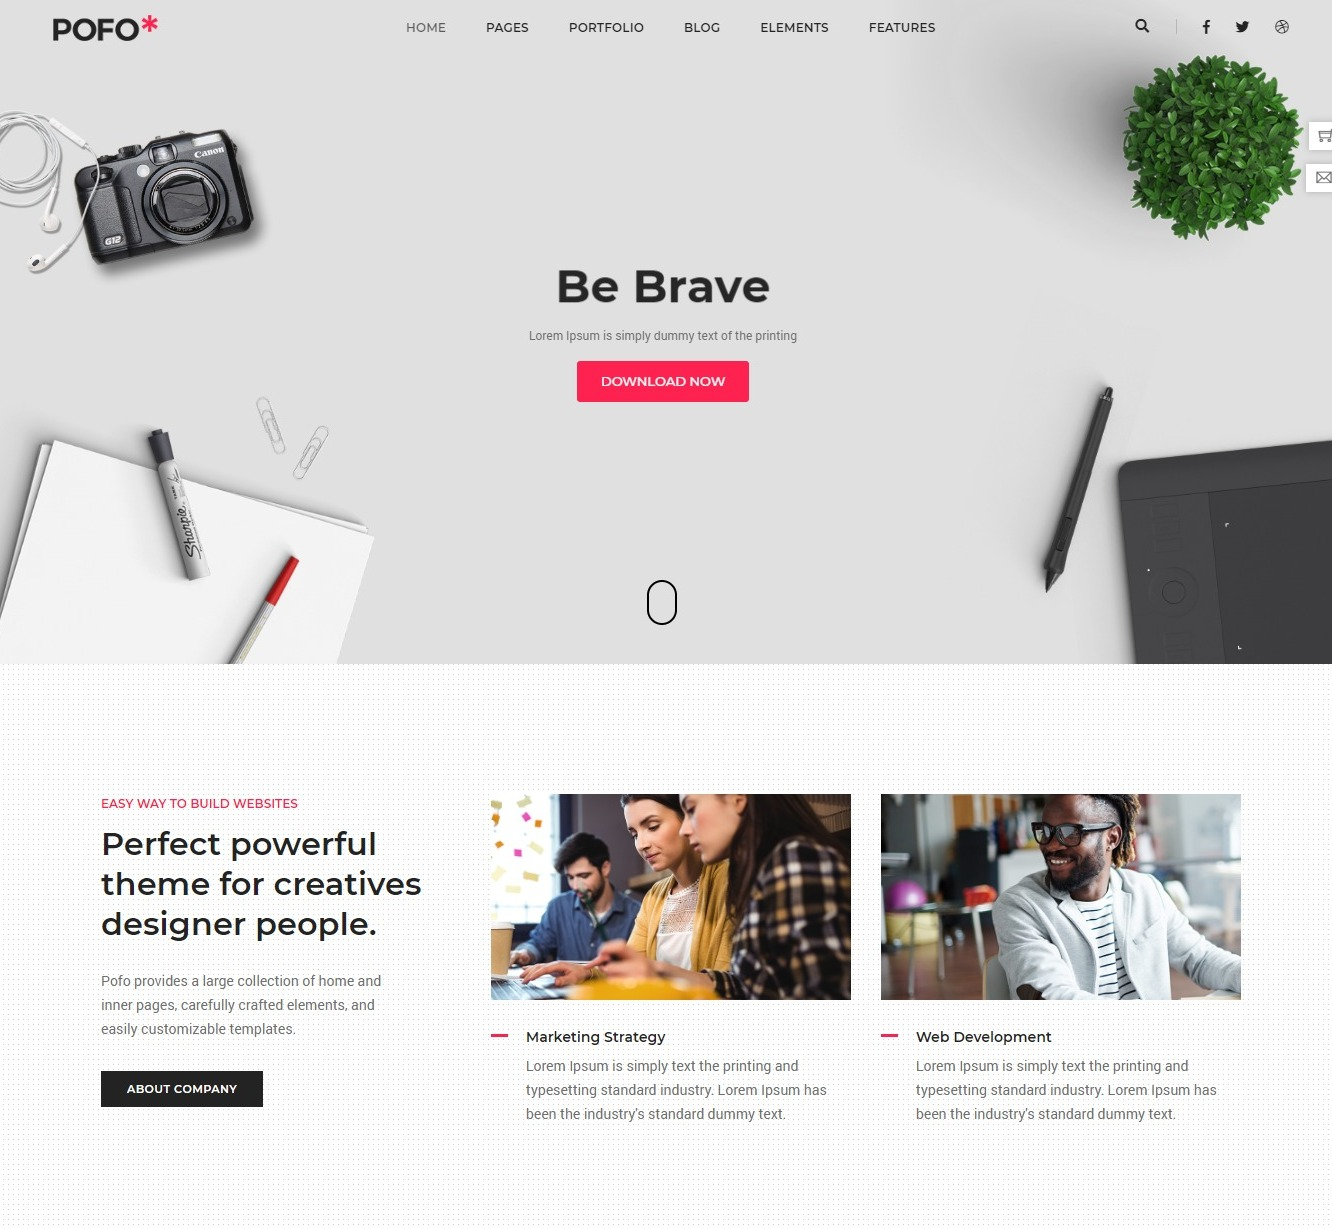 pofo-html-landing-page-templates-podcast-cover-design